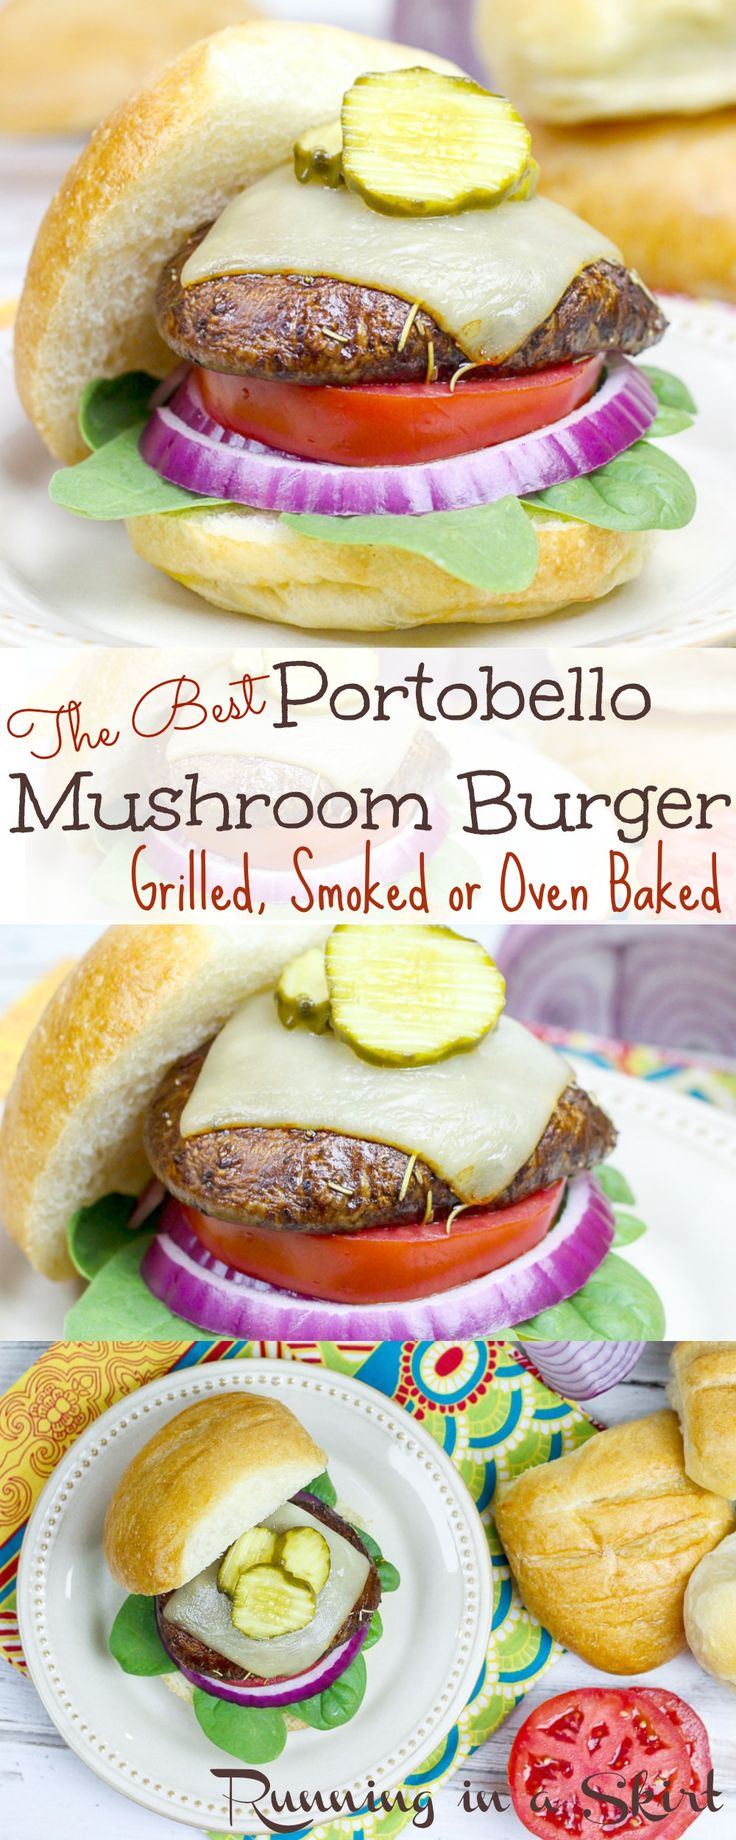 "The Best Portobello Mushroom Burger recipe.  Grilled, Oven Baked or Smoked.  The perfect, simple vegetarian burger recipe option!  Vegetarians & meat-eaters love this ""burger."" Delicious, easy & healthy  marinade with balsamic, olive oils, rosemary and steak seasoning.  Make vegan by subbing the cheese with avocado.  Eat for Meatless Monday or any of the summer holidays like 4th of July, Memorial Day or Labor Day! / Running in a Skirt"